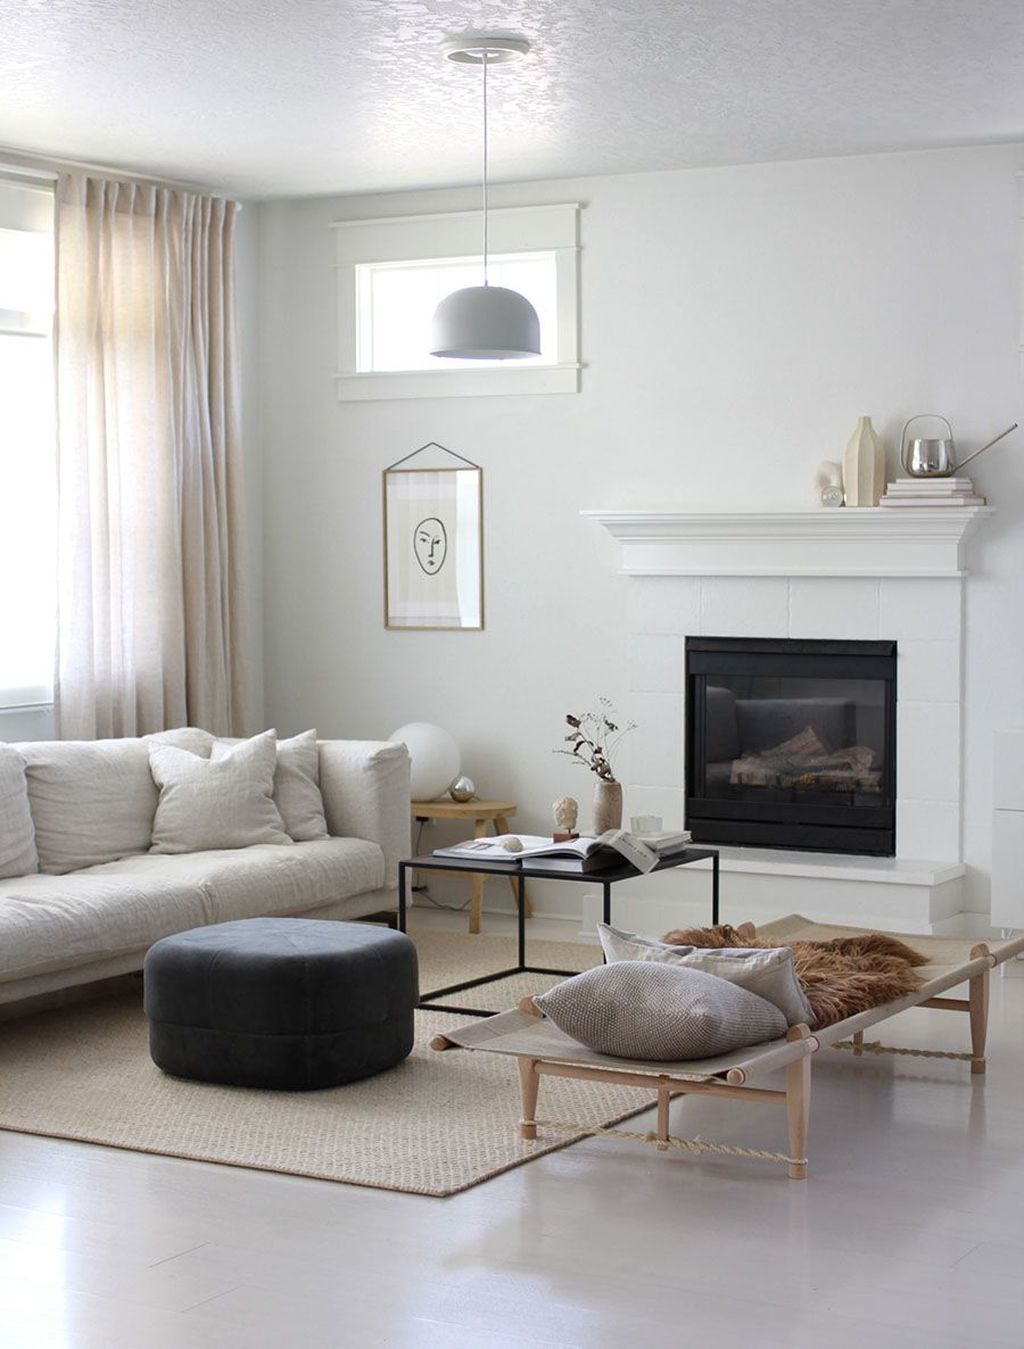 Cool Scandinavian Fireplace Design Ideas To Amaze Your Guests 03